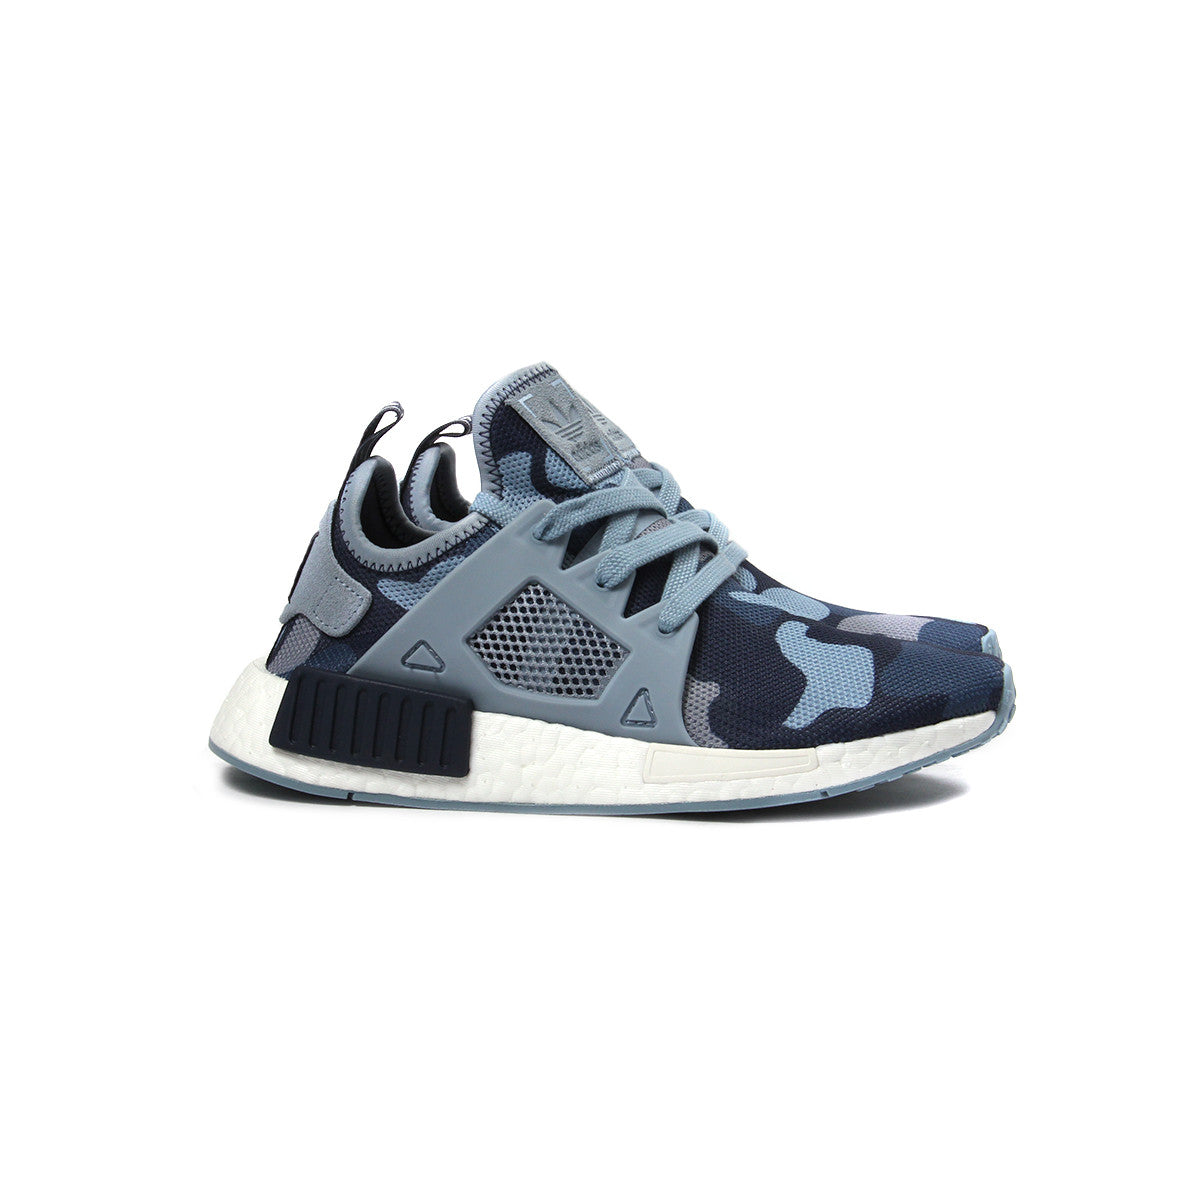 68% Off Adidas nmd xr1 'og' core black by1909 price May 2017